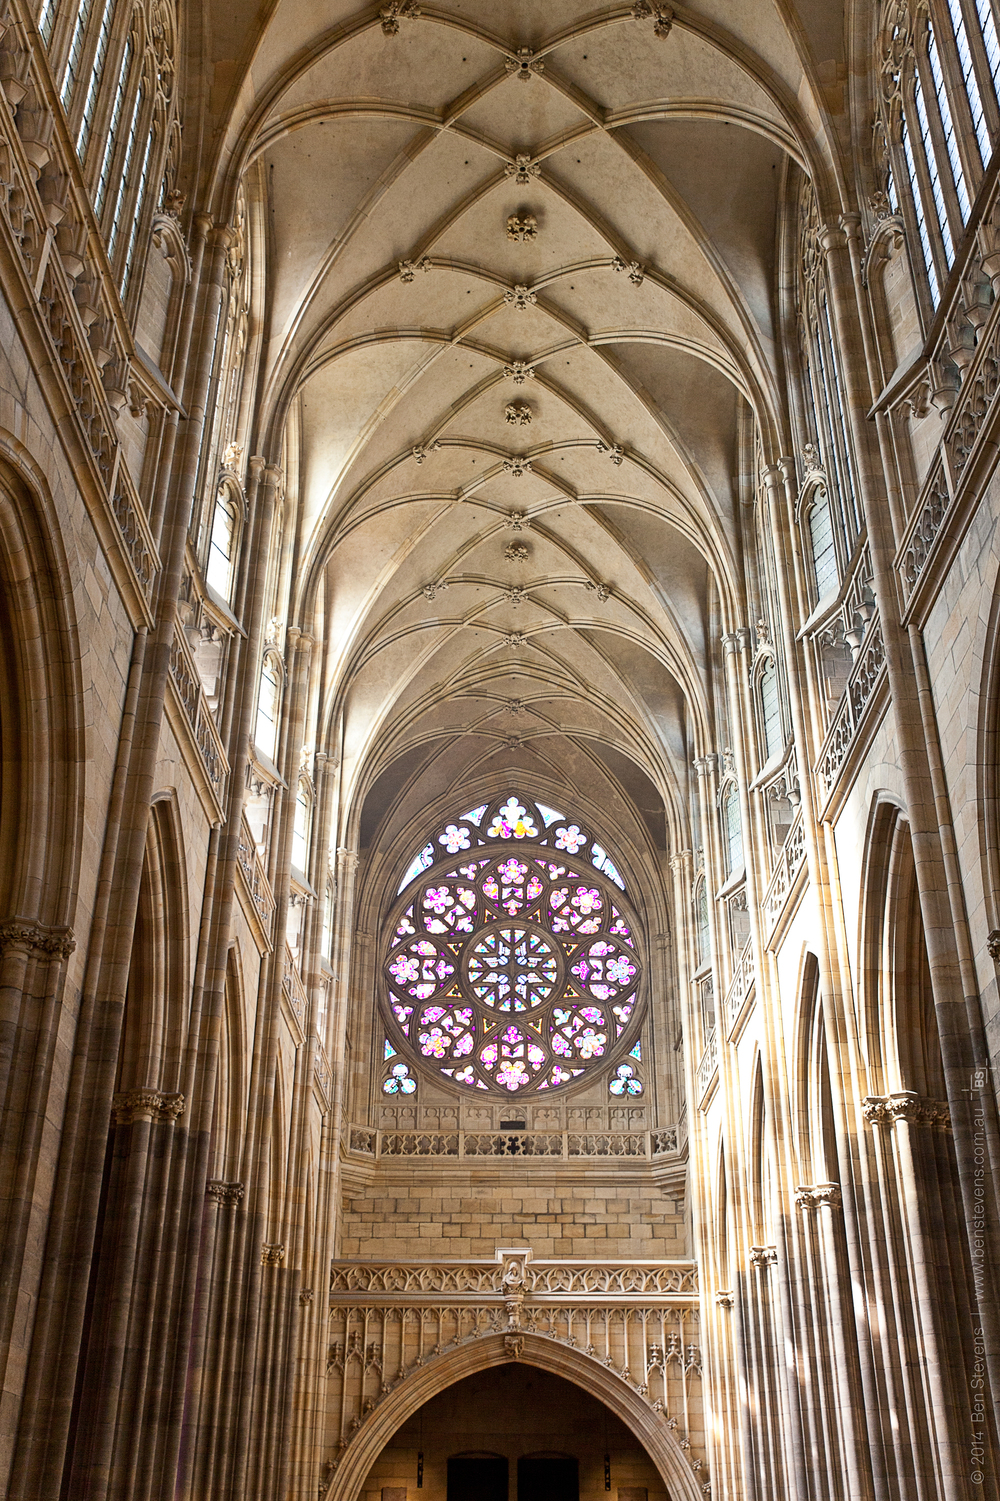 St Vitus Cathedral |Prague, Chezc Republic April 2014 One of the more impressive cathedrals in all Europe, St Vitus'nave isa marvel of light and space. Purchase printshere